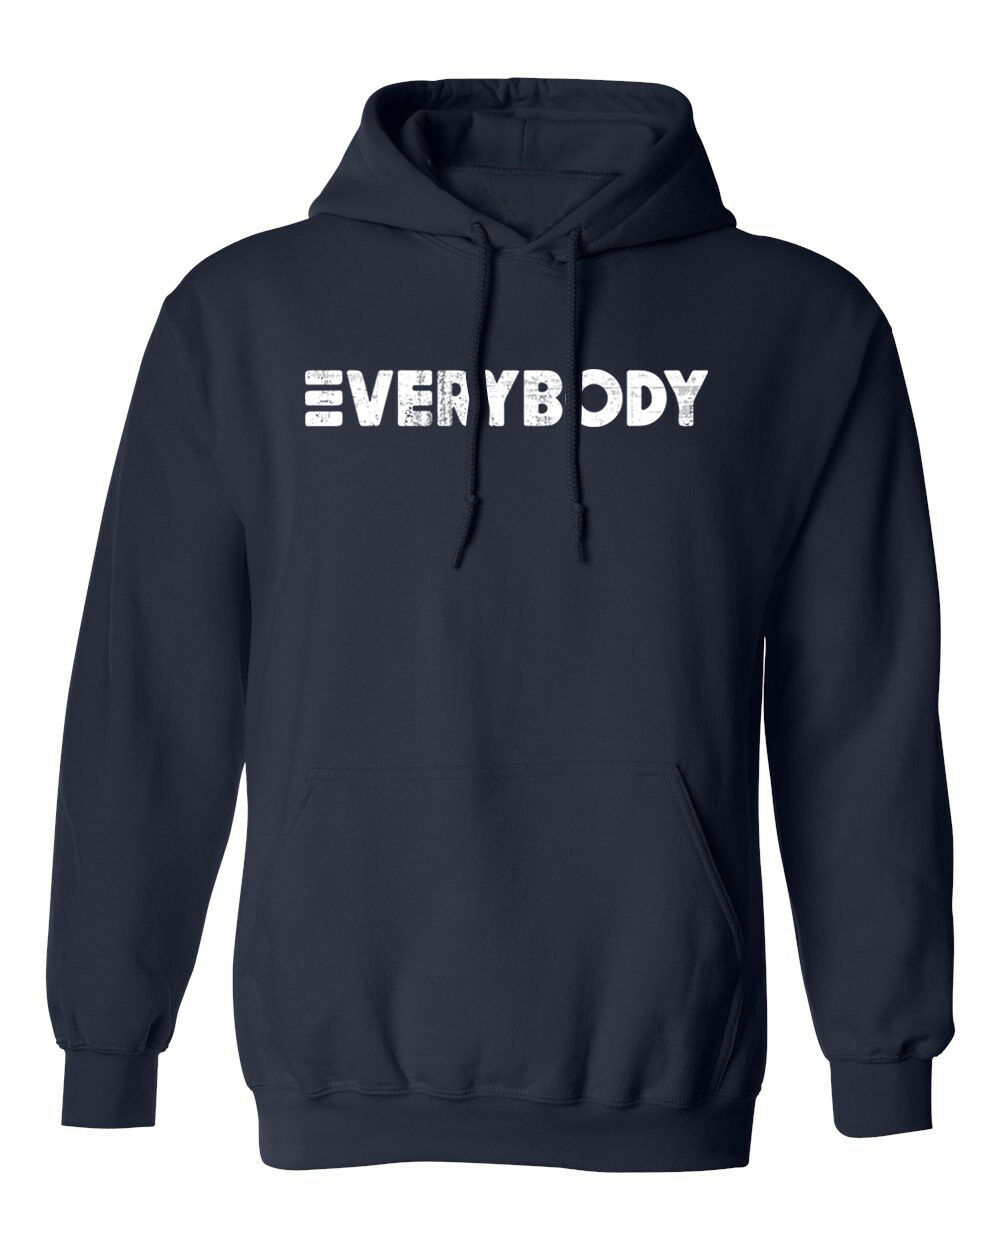 Logic Everybody Flexicution 1-800 Mens & Youth Hooded Sweatshirt